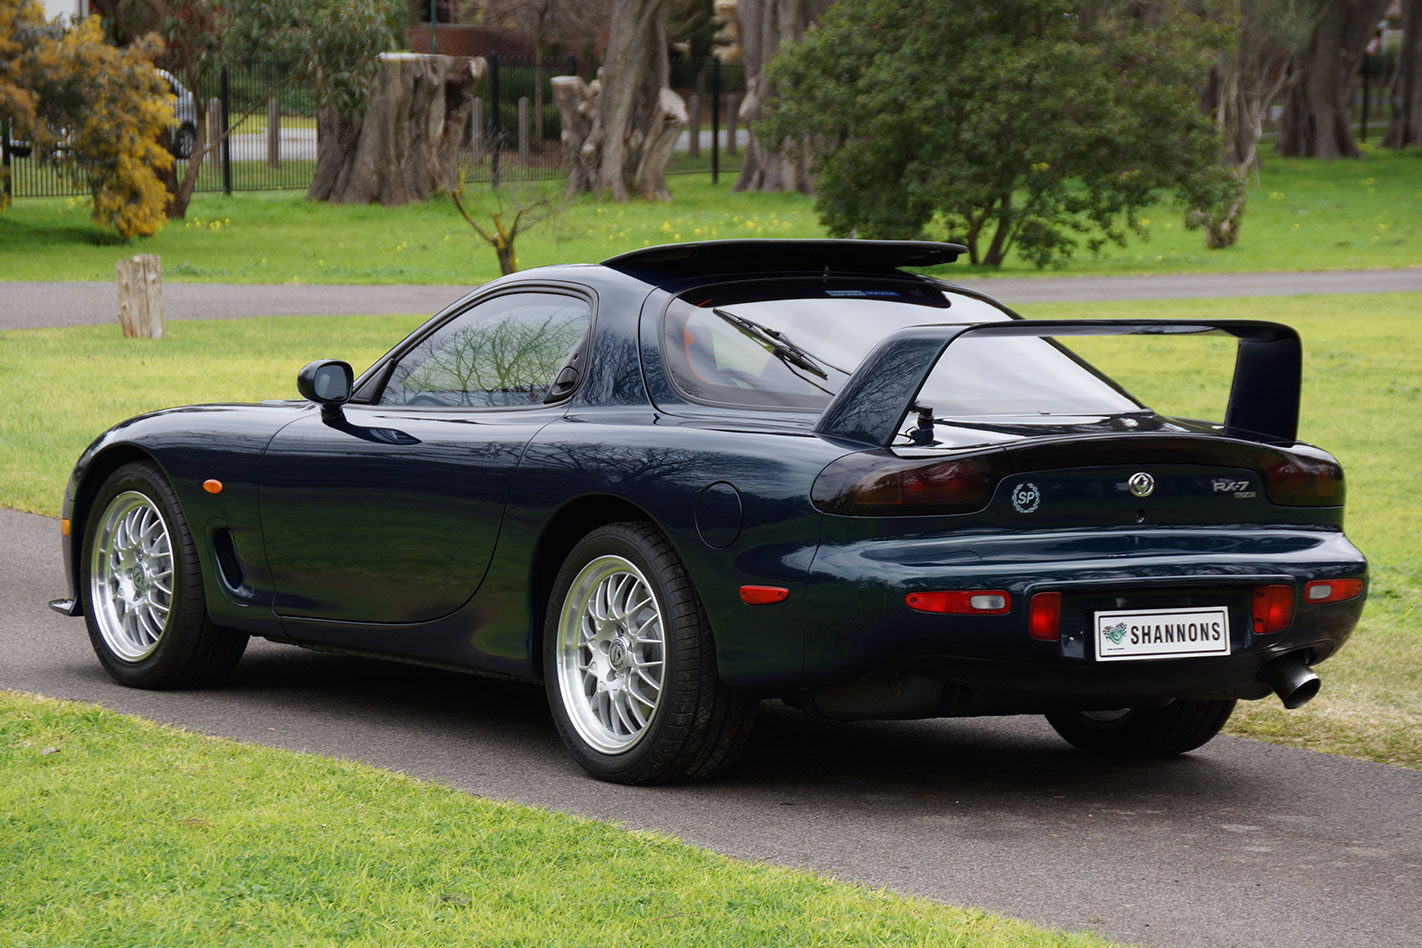 Mazda RX-7 SP rear auction